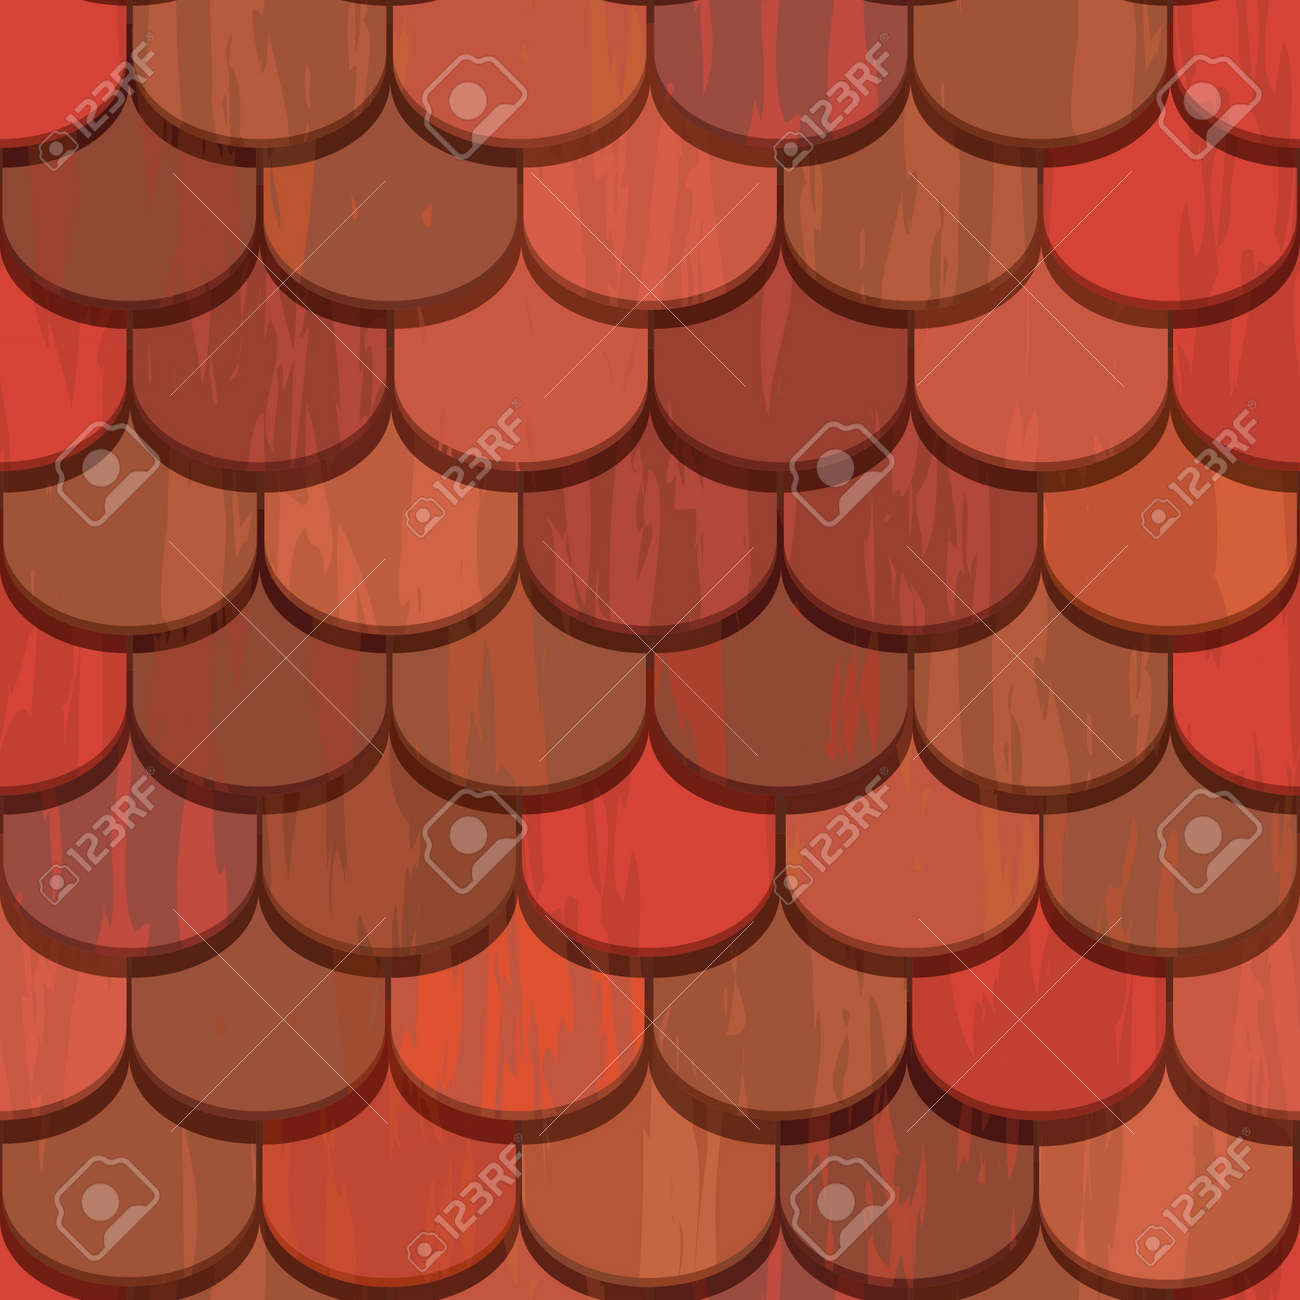 Red clay ceramic roof tiles seamless texture royalty free cliparts red clay ceramic roof tiles seamless texture stock vector 13551603 dailygadgetfo Images